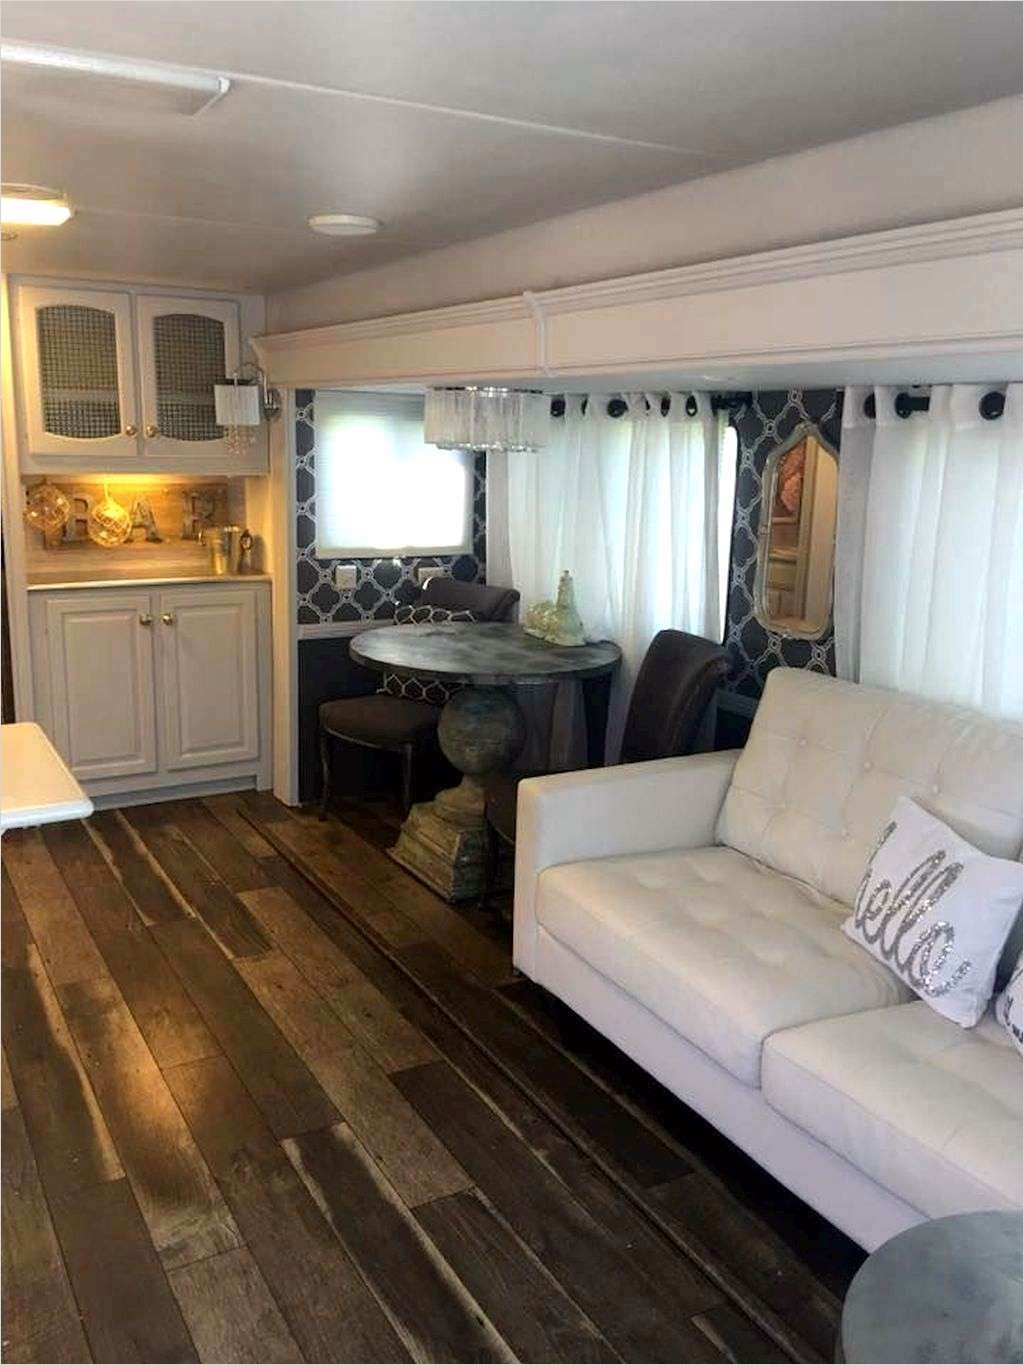 43 Perfect Rv and Camper Interior Ideas 27 Camper Interior Decorating Ideas Lovely Rv and School Bus Conversions Pinterest 1